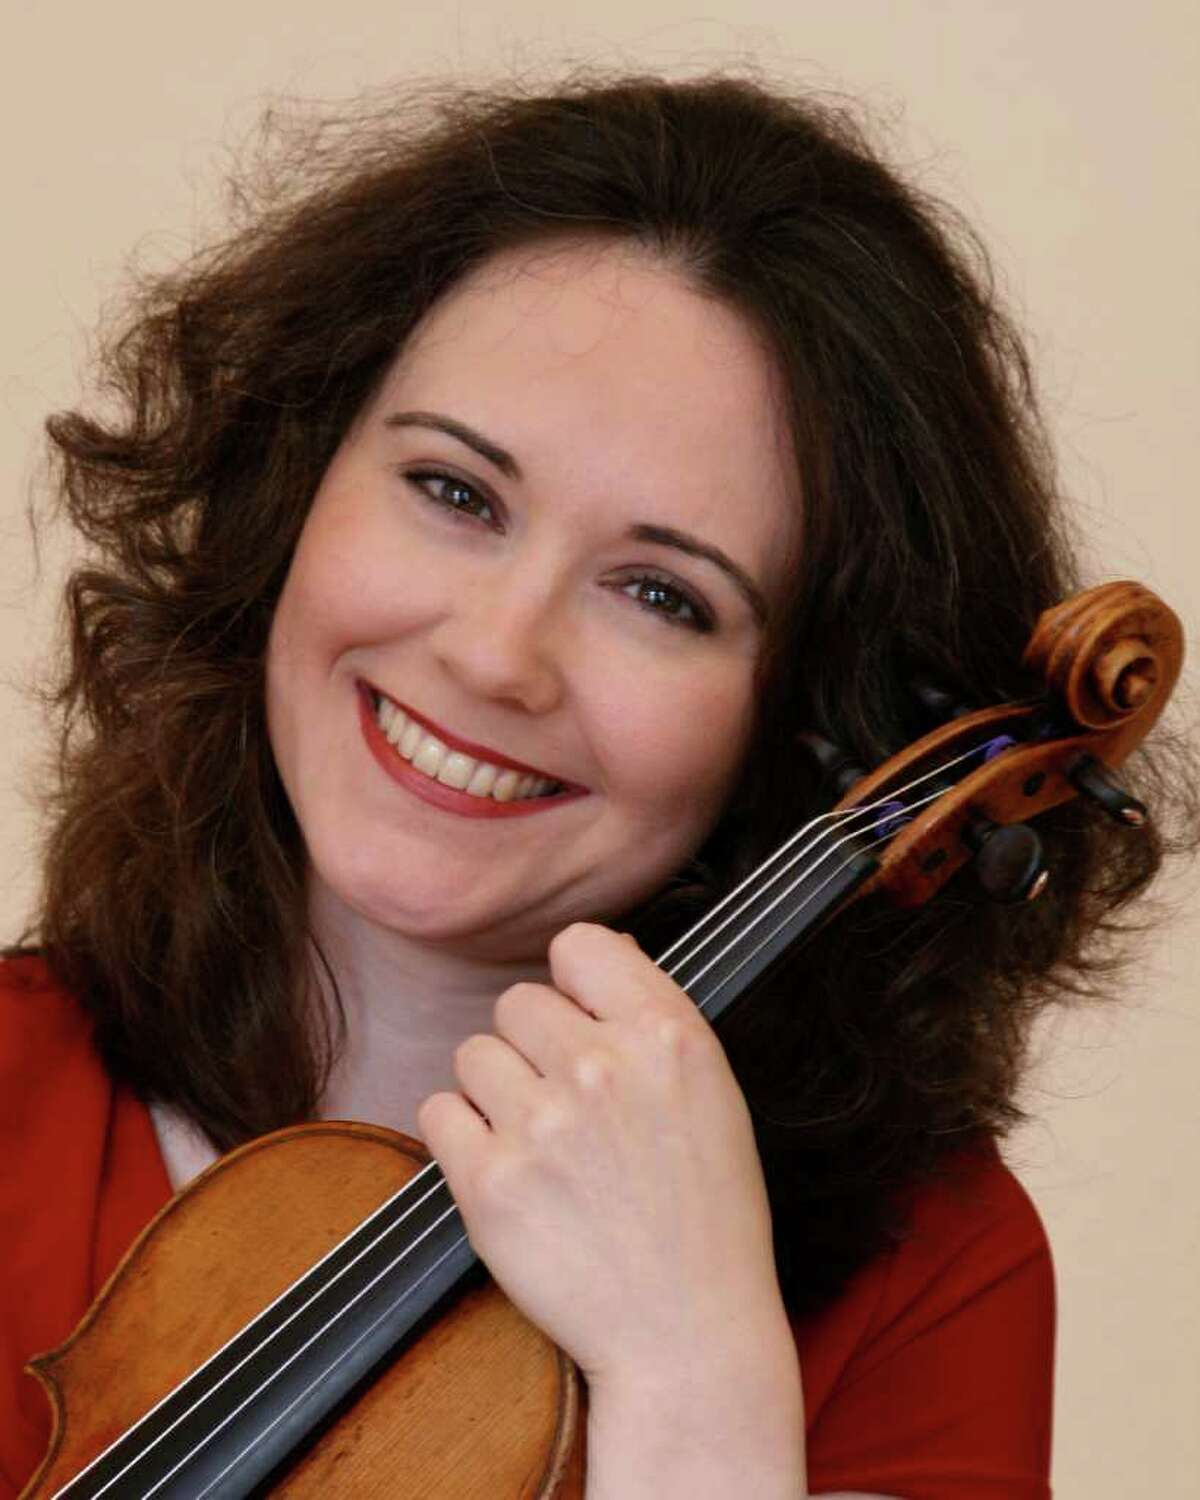 Violinist Judith Ingolfsson will perform two selections, Alban Berg's 'Violin Concerto,' and Saint-Saens 'Introduction and Rondo Capriccioso,' during two concerts with the Greenwich Symphony Orchestra, March 17 and 18. For more information on times and ticket prices, call 203-869-2664 or visit www.greenwichsym.org.